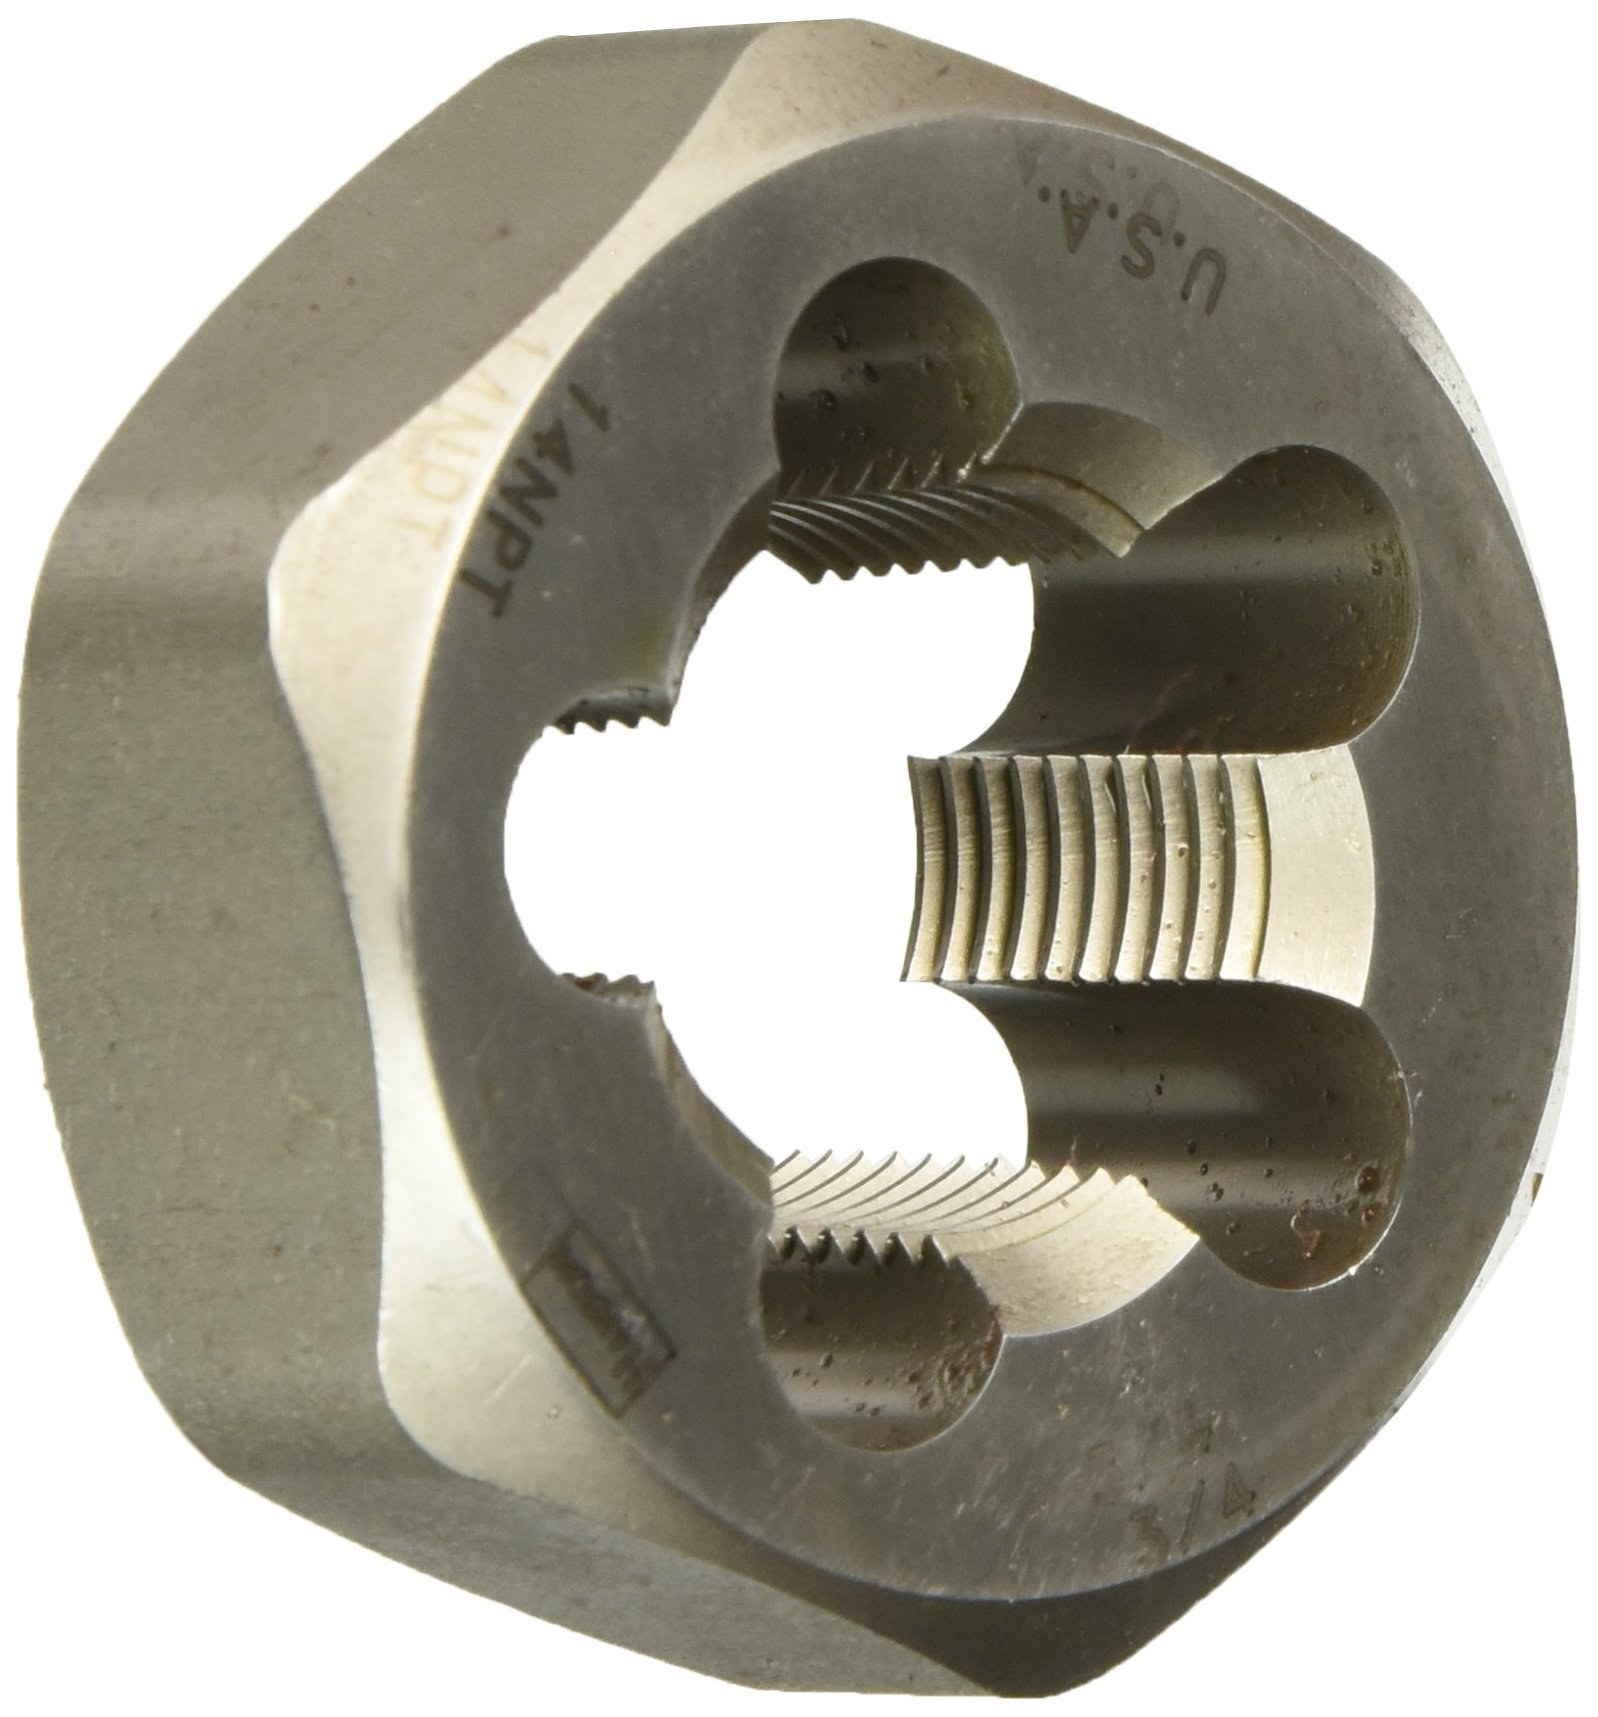 Irwin Tools 7406 Irwin Pipe Threading Die Hex 2'' W Across 3/4''-14NPT by Irwin Tools